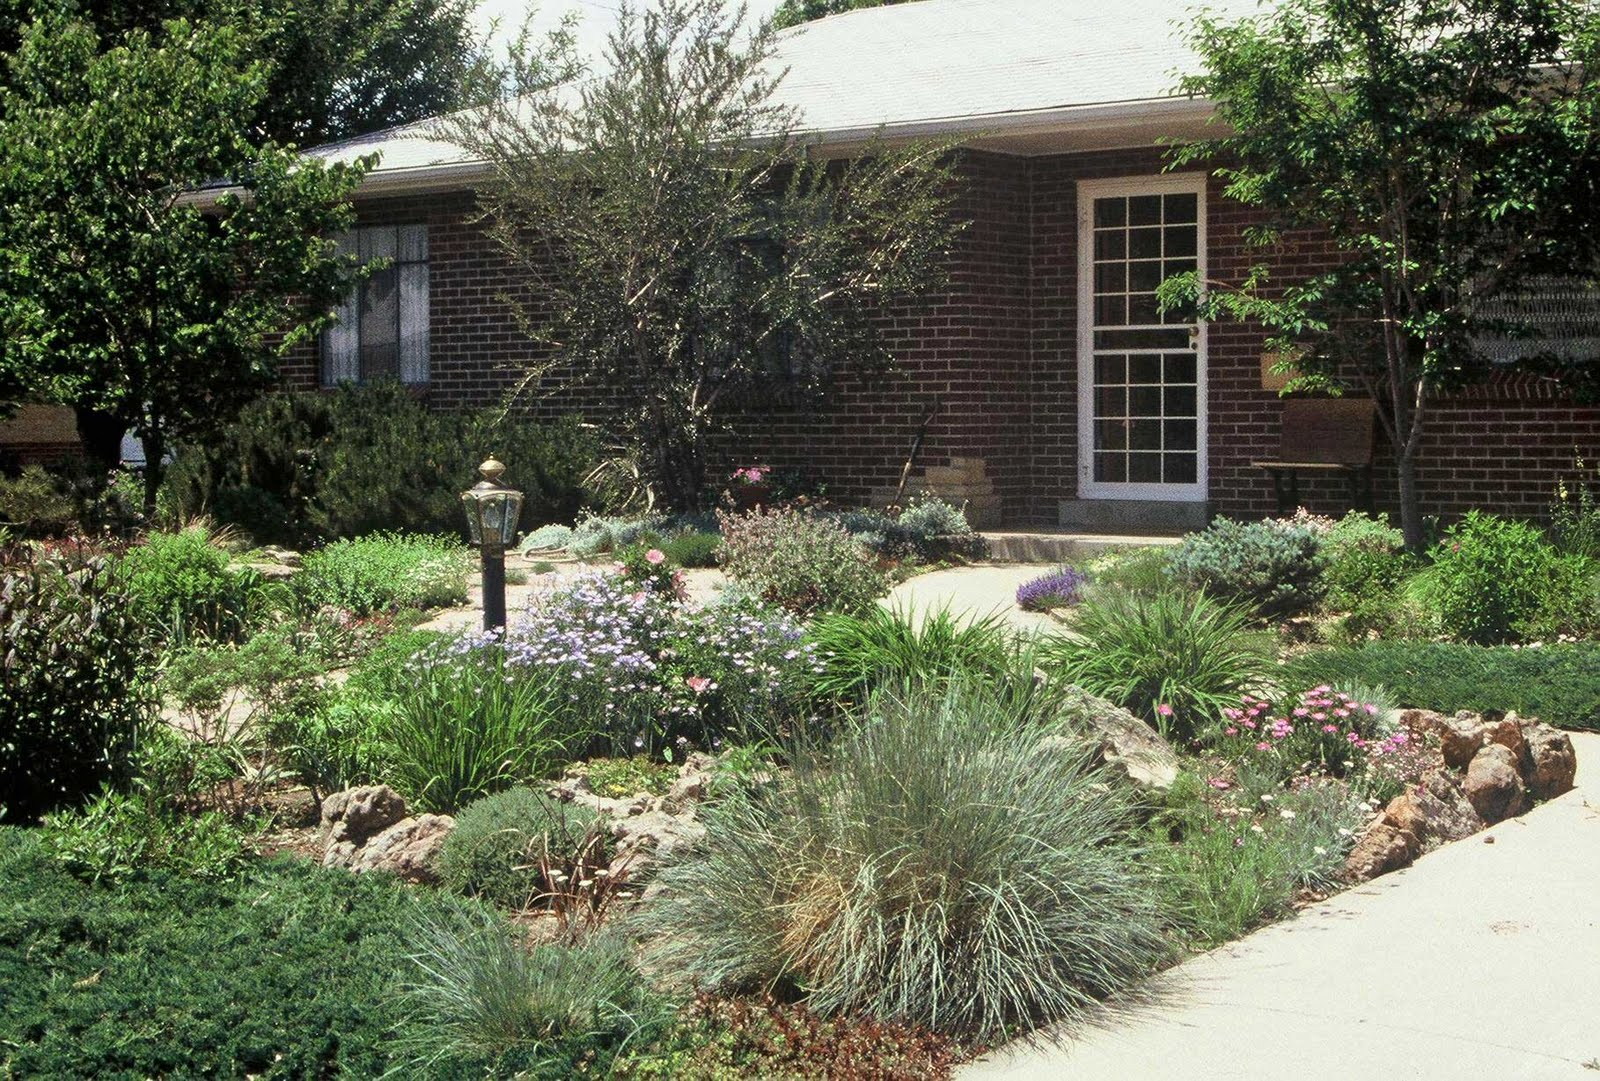 The art garden garden designers roundtable lawn alternatives for Rock garden designs front yard